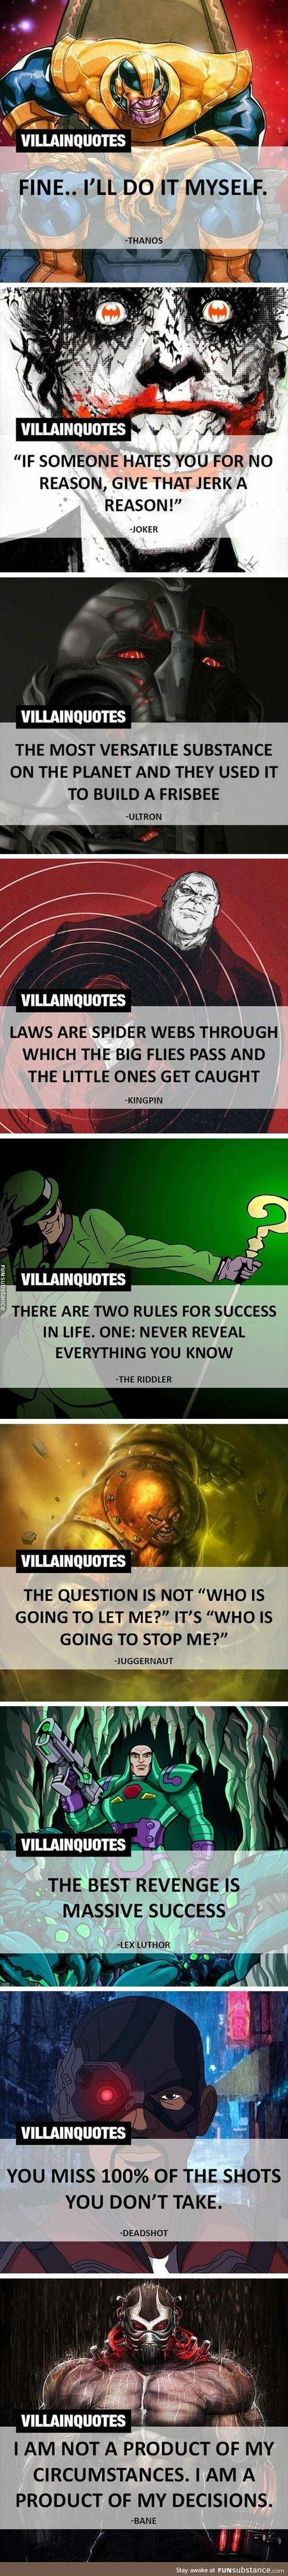 "There's a very fitting quote from on of my favourite book.  ""I remember what I just do. Even if it makes me the villain of my own story"". I think about that quite often. And these quotes are similar. So... why are villains villains? Because they do things another person thinks are bad. But are they truly ?"